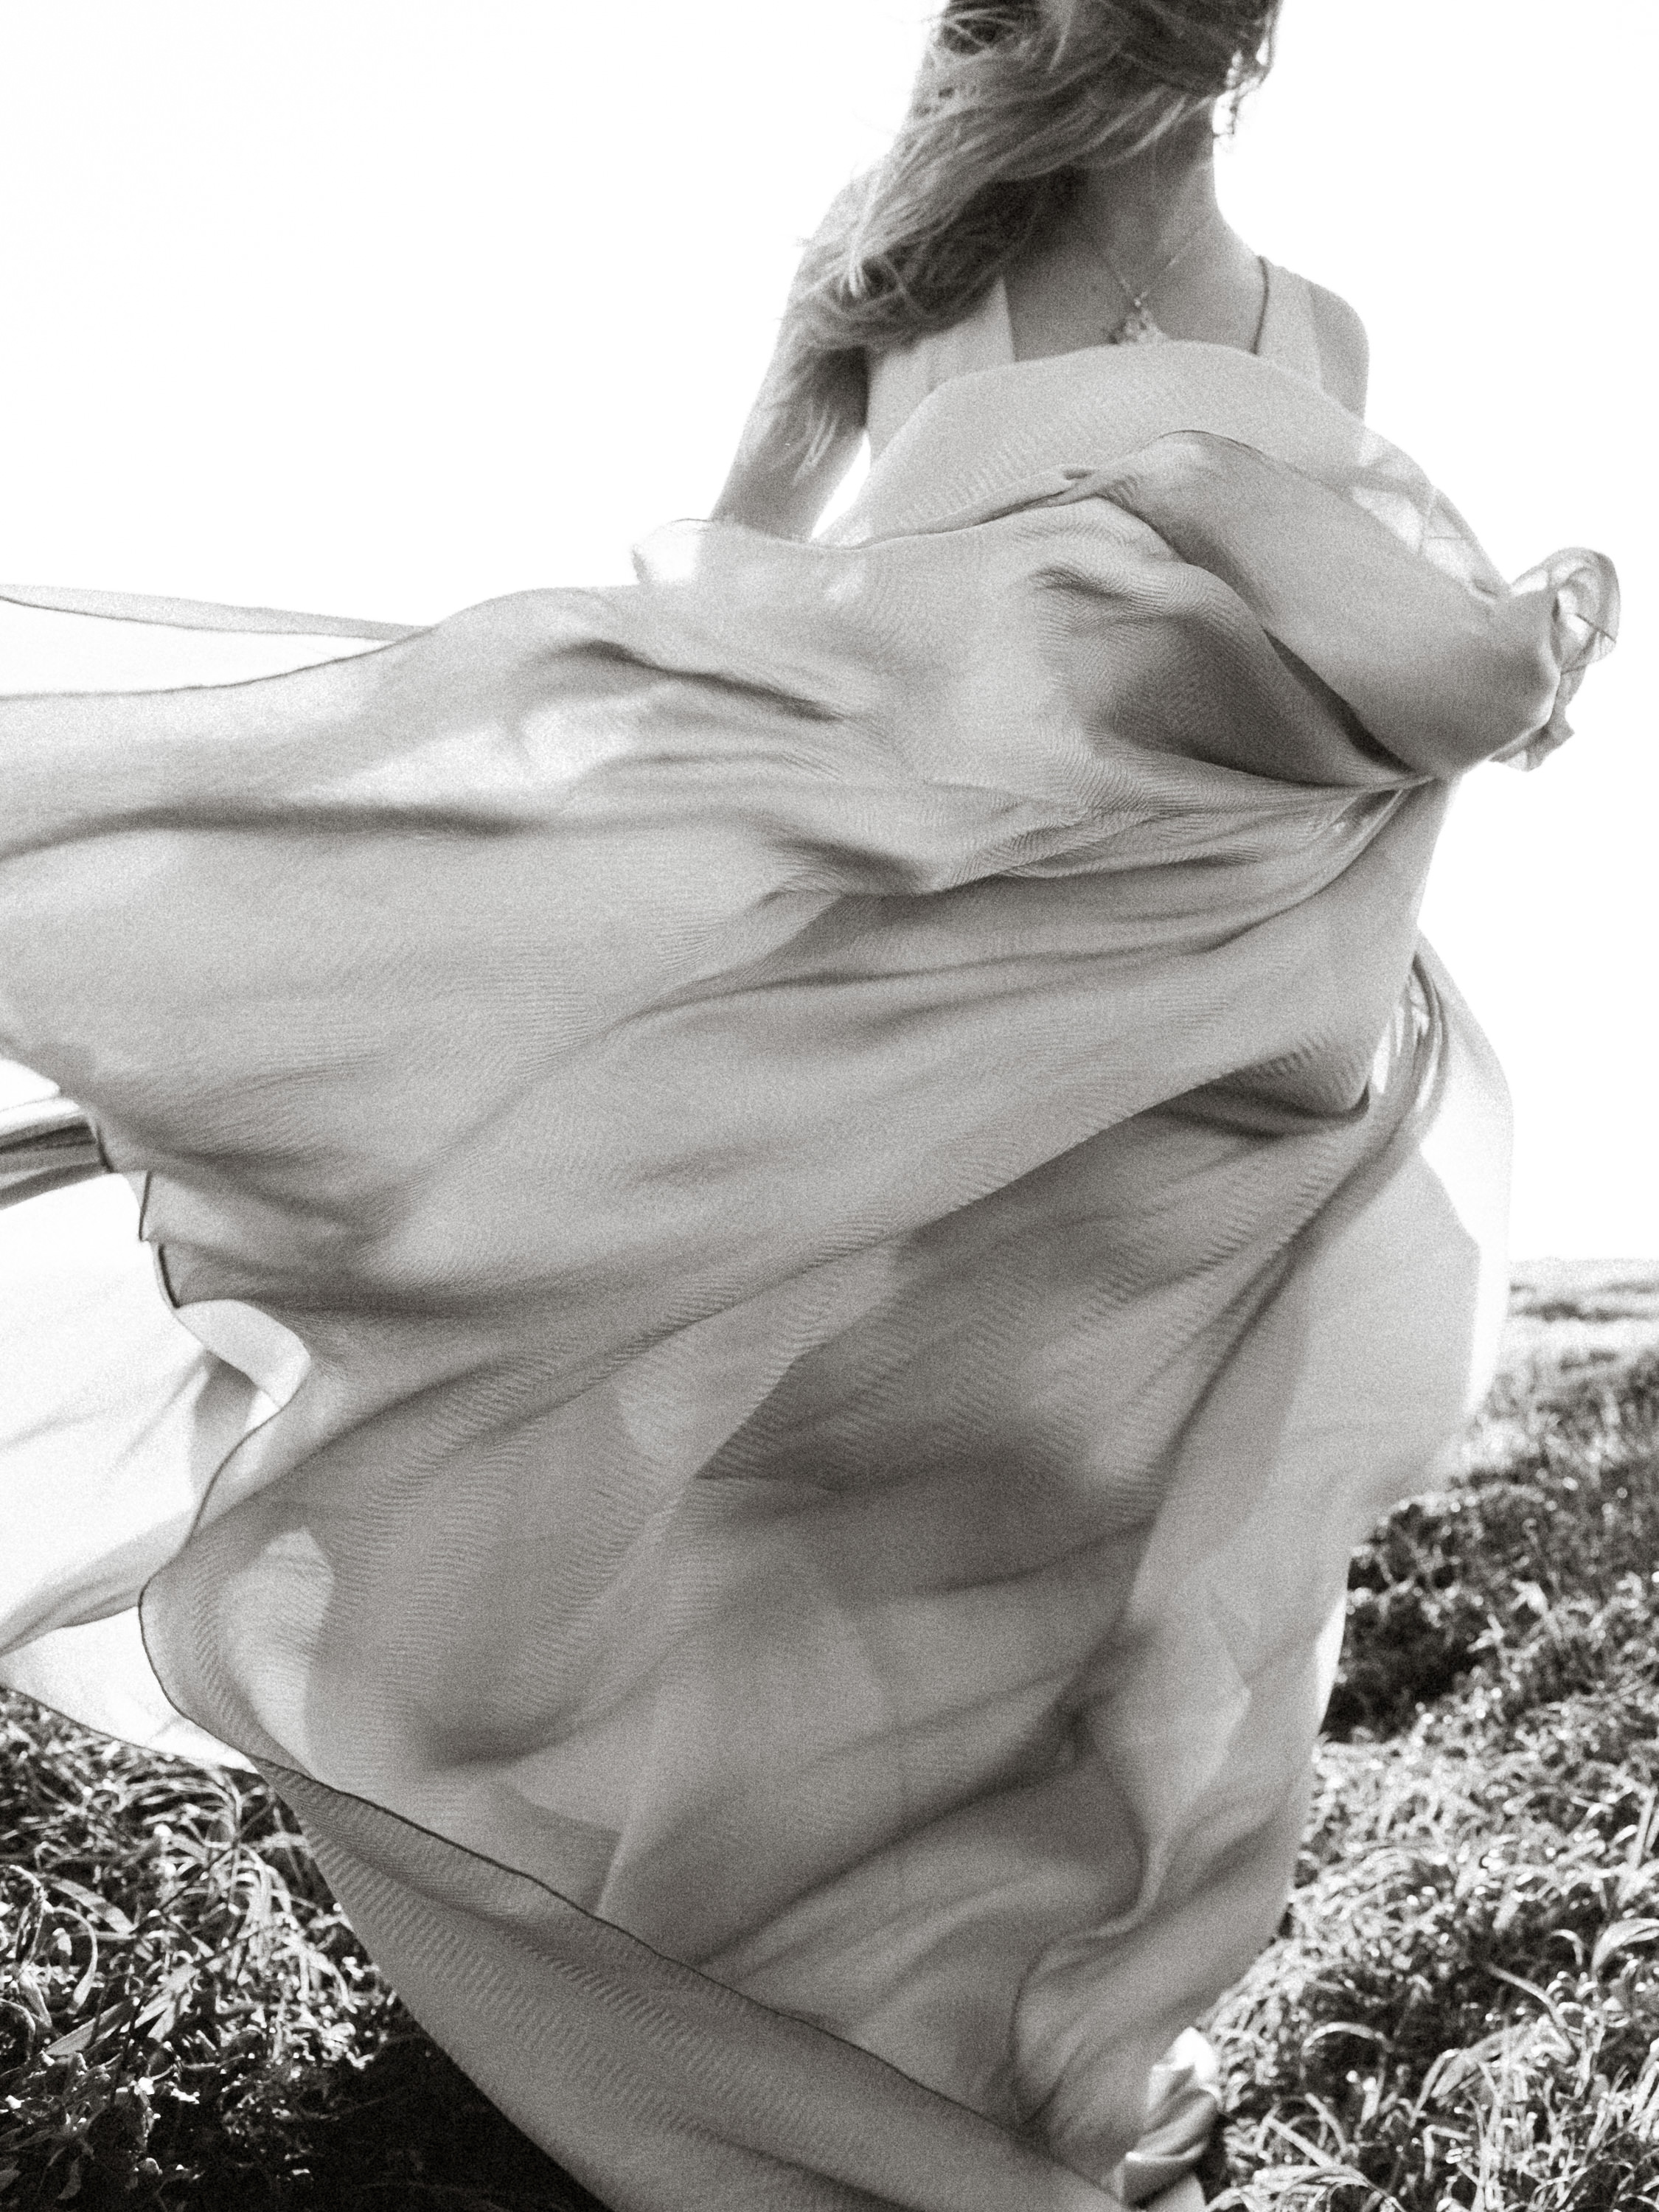 Brides gown flowing in the wind photographed by Joel and Justyna - Ottawa wedding photographers